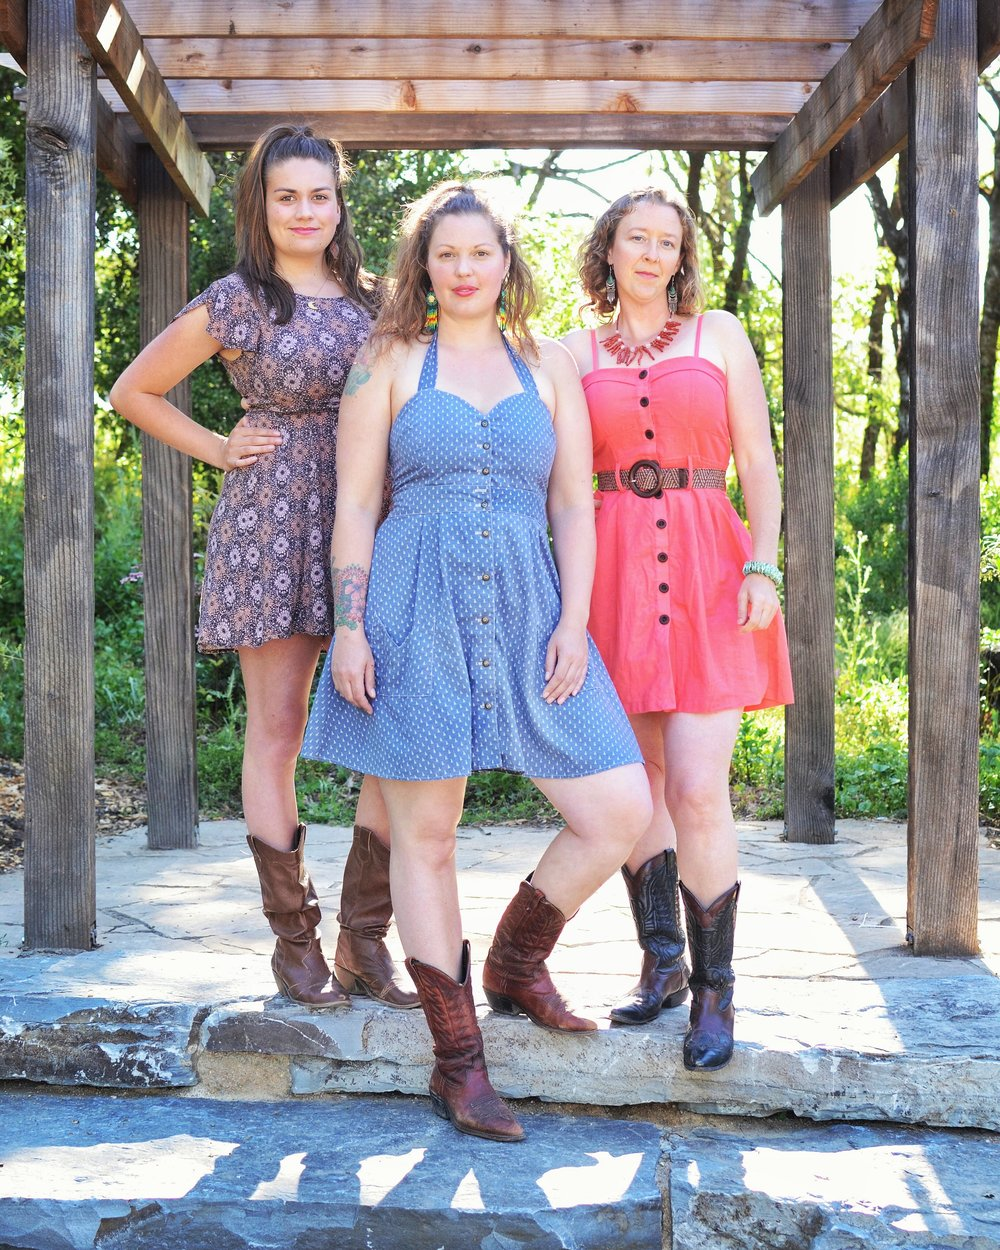 Our Story - With organic harmonies that enchant and uplift the spirit, The Real Sarahs share their special gift of vocal synergy. This trio of women, who are all named Sarah, enjoy the magic that is created by voices in harmony, acoustic instruments, and the energetic connection between artists and audience. Embracing many genres of music, you are likely to hear threads of folk, jazz, blues, and country running through their songs. Singing from the stories of their own life journeys and experiences, their original music is honest, evocative and heartfelt.Introduced by a mutual friend in 2010, Sarah 'Songbird' Larkin and Sarah Ryan have been nearly inseparable, musically, since. As founding members of Motherland Family Band in 2011, these ladies began to sculpt their original songs into tightly woven harmonic collaborations. Larkin and Ryan struck out on their own as a duo in 2012 and The Real Sarahs was born. They recorded their first EP CD together in 2013, demonstrating each in their capacity to lead and support and embody beauty through song. Their second album, Afternoon with the Dirty Birds, was released in May of 2017 and represents the body of work they developed together, with the support of full instrumentation. This work showcases their songs with a big, 'full band' sound and allows the pieces to reach a sonic potential unachievable as a duo.As neighbors in a tight knit musical community, it was inevitable that Sarah Rose would find her way to The Real Sarahs. 'Rosie' was an accomplished local performer who had admired the work of the duo. Her first solo EP, Lay My Burden Down' was released in 2016. Her strengths as a singer/songwriter, harmony singer and cellist made her a natural fit. The ladies jumped into re-arranging their repertoire for three parts and started performing together in October 2016. Sarah Rose's lovely cello playing is featured on Afternoon with the Dirty Birds.With gratitude for the gift of music given them, The Real Sarahs offer back their gifts with open hearts and truth of purpose. These women seek to inspire, uplift and entertain their audiences with songs that speak to the heart of the human experience. With warmth and humor The Real Sarahs offer their REAL selves to the world as the women of song that they were born to be. Currently residing in Mendocino County California, The Real Sarahs enjoy performing in their local area and throughout the Northwest. They aim to do more regional and national touring in time.